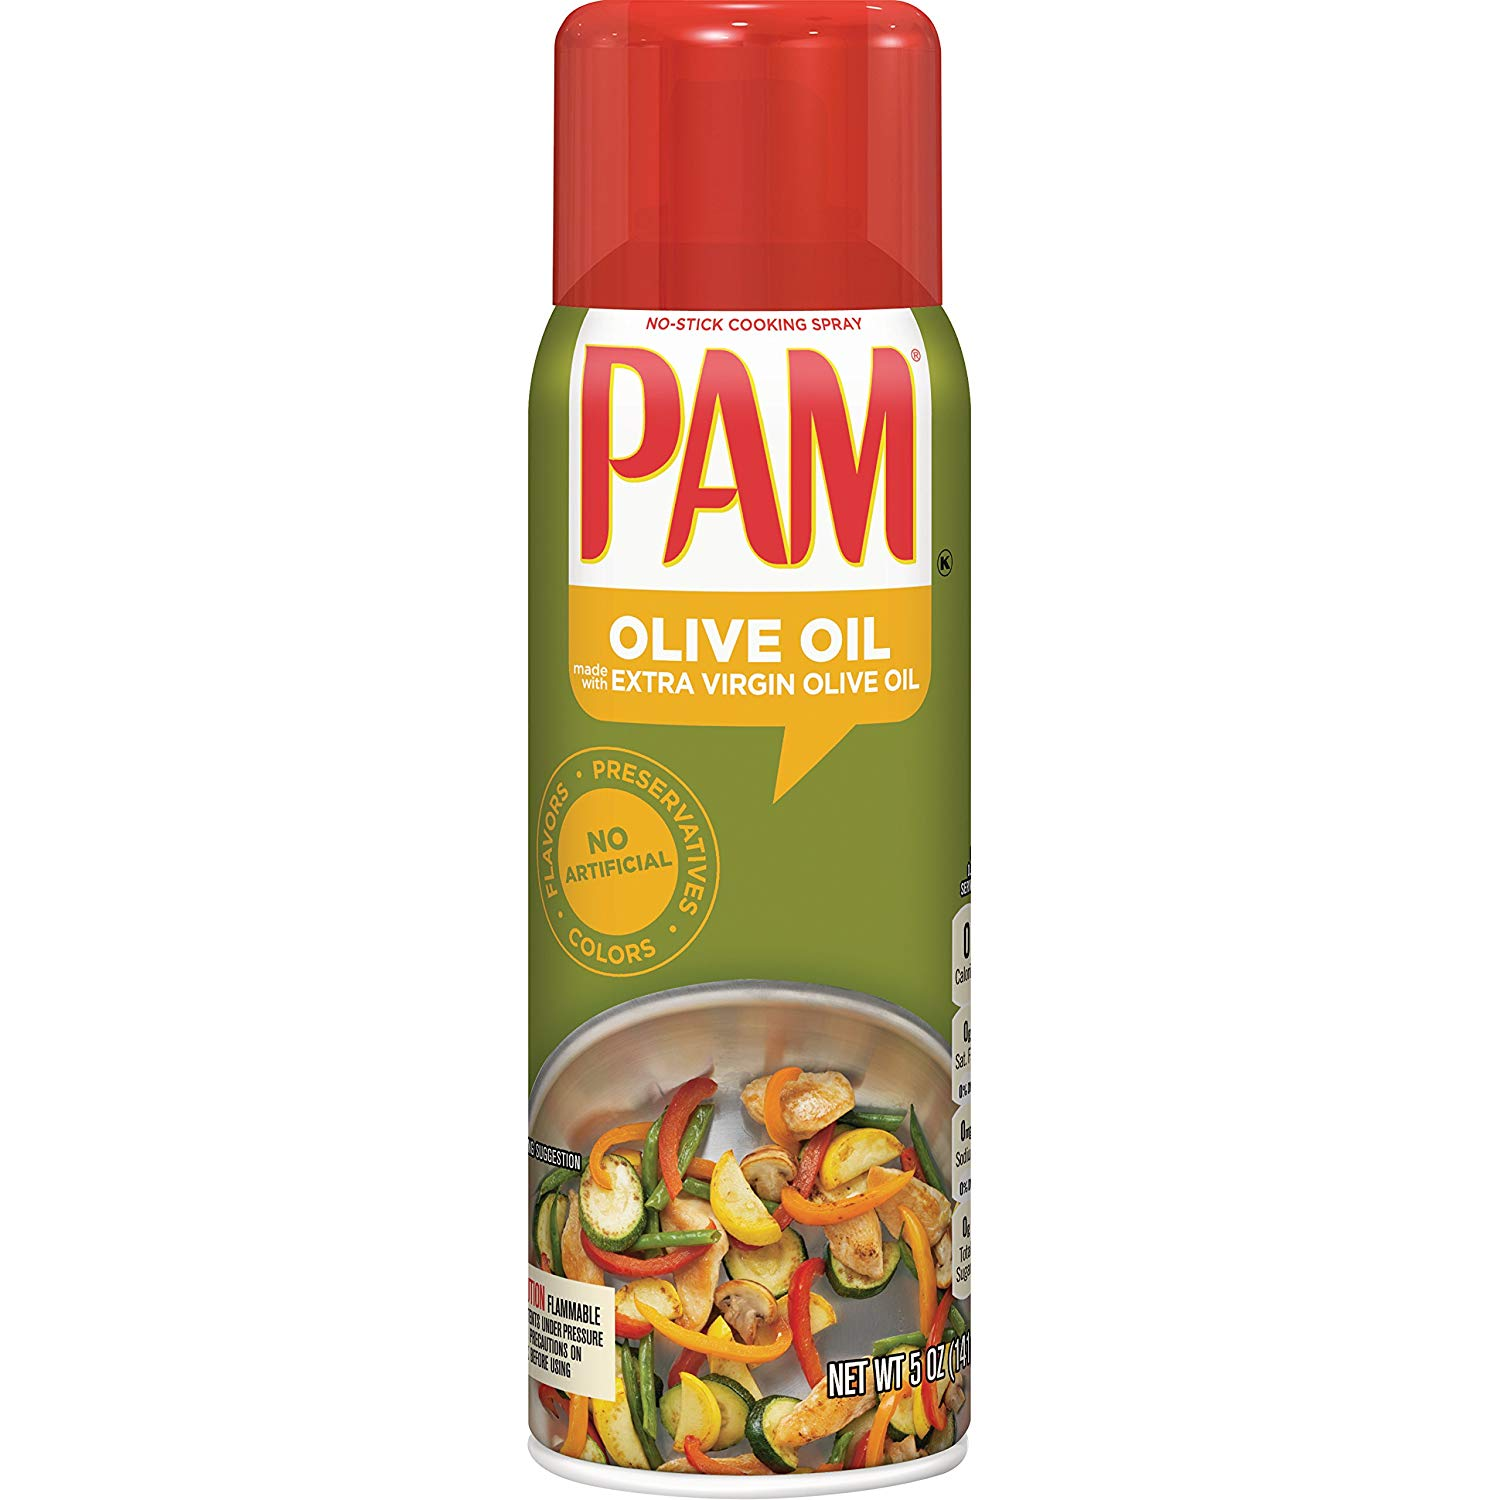 PAM Olive Oil Cooking Spray, 5 oz.